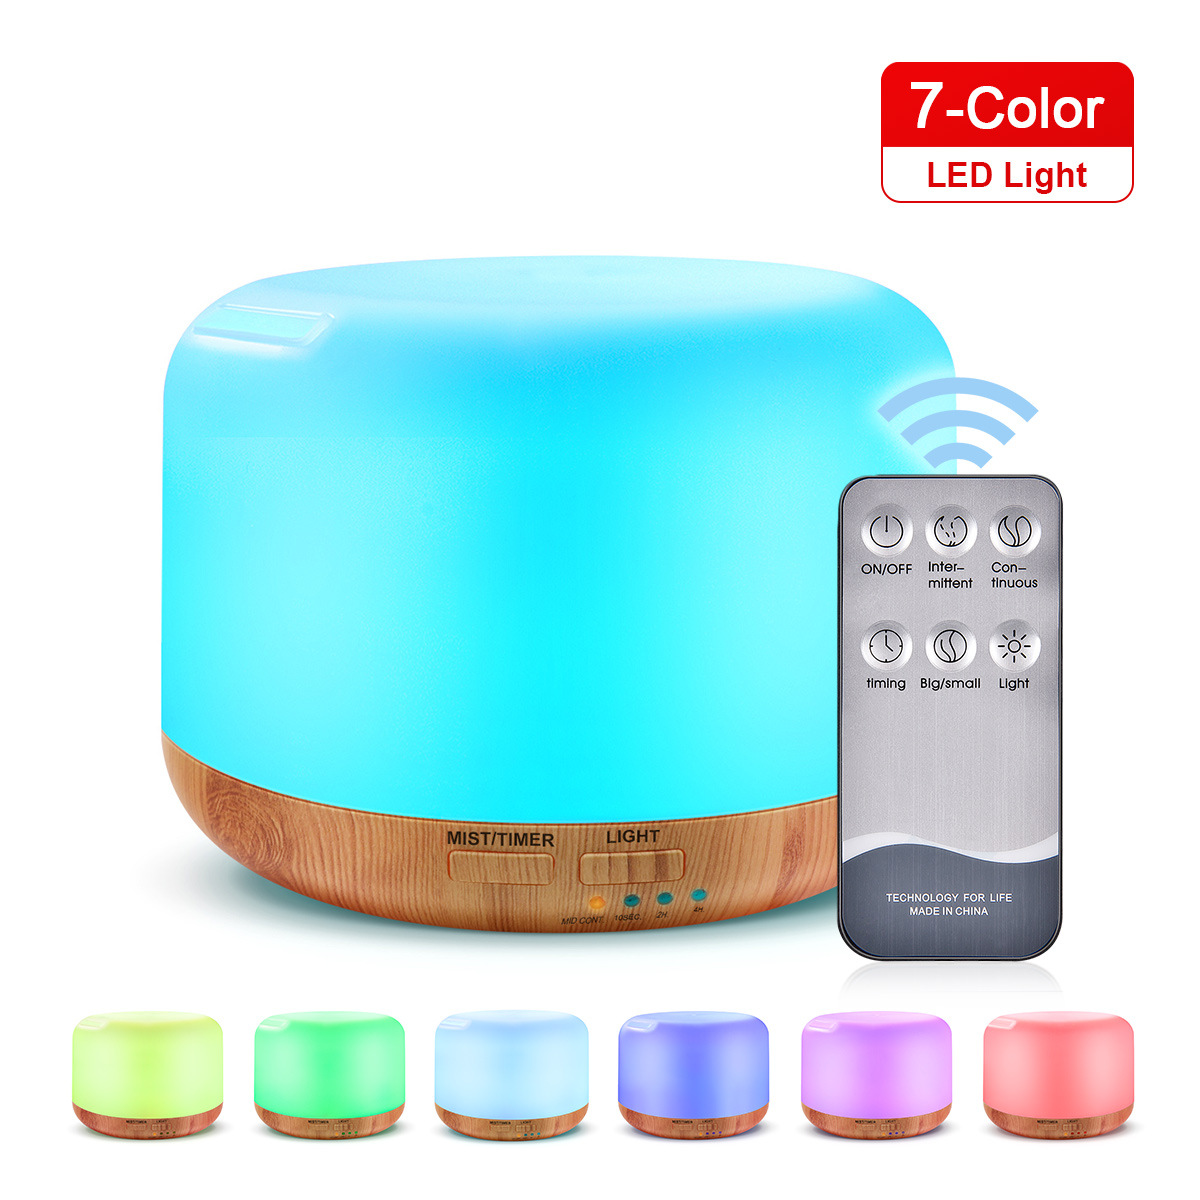 300ml Remote Control Wood Grain Household Fragrance Lamp Ultrasonic Mute Humidifier Light wood grain remote control_EU Plug